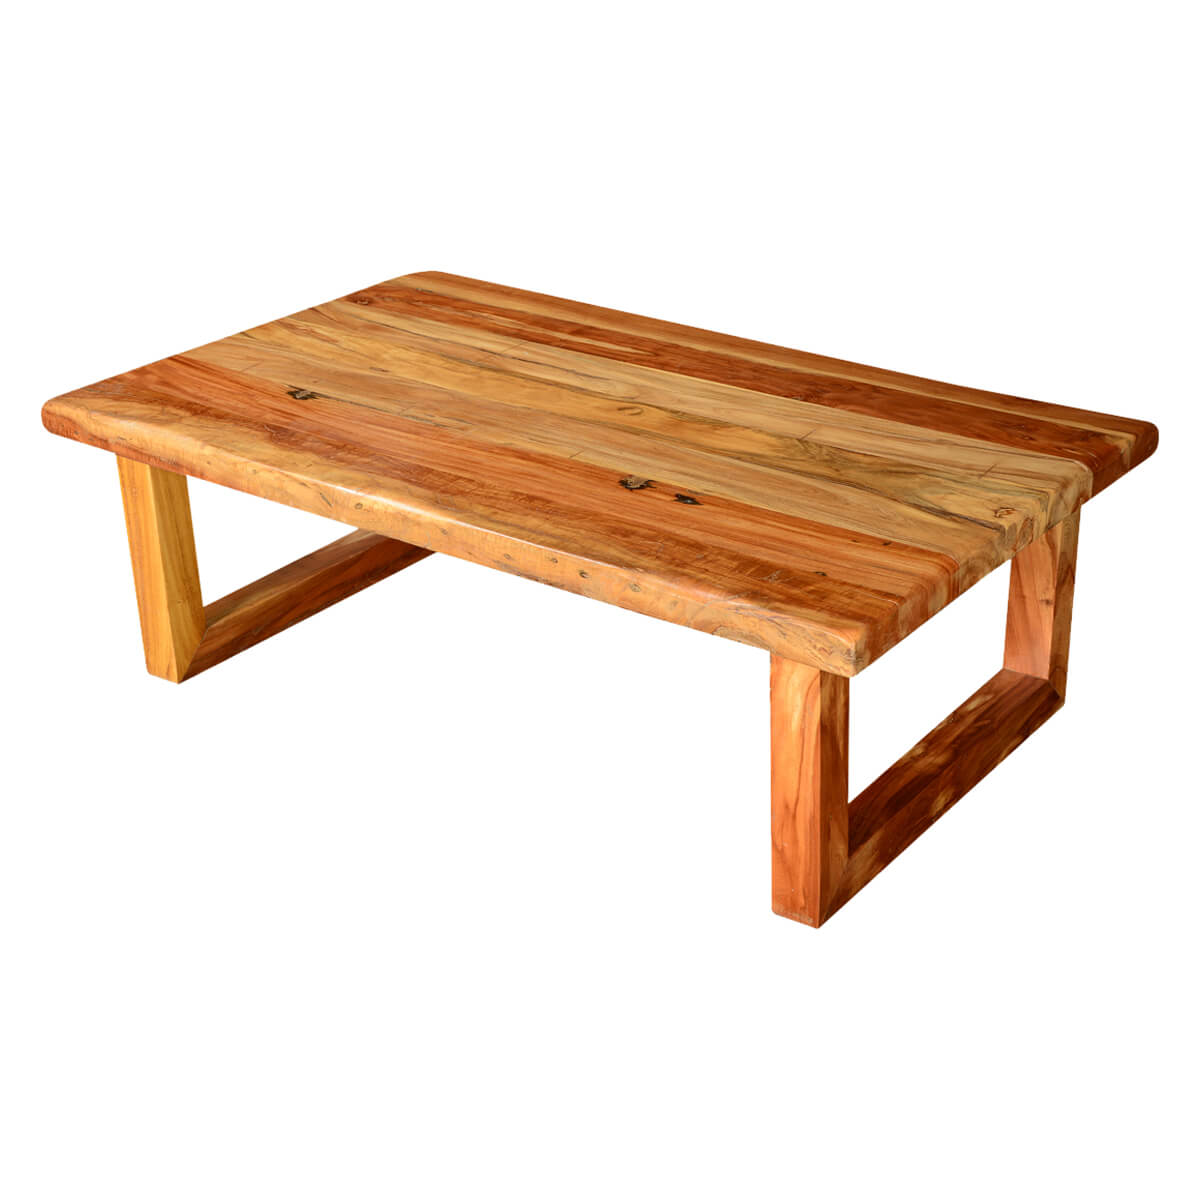 Modern rustic simplicity acacia wood 51 coffee table for Modern wooden coffee tables